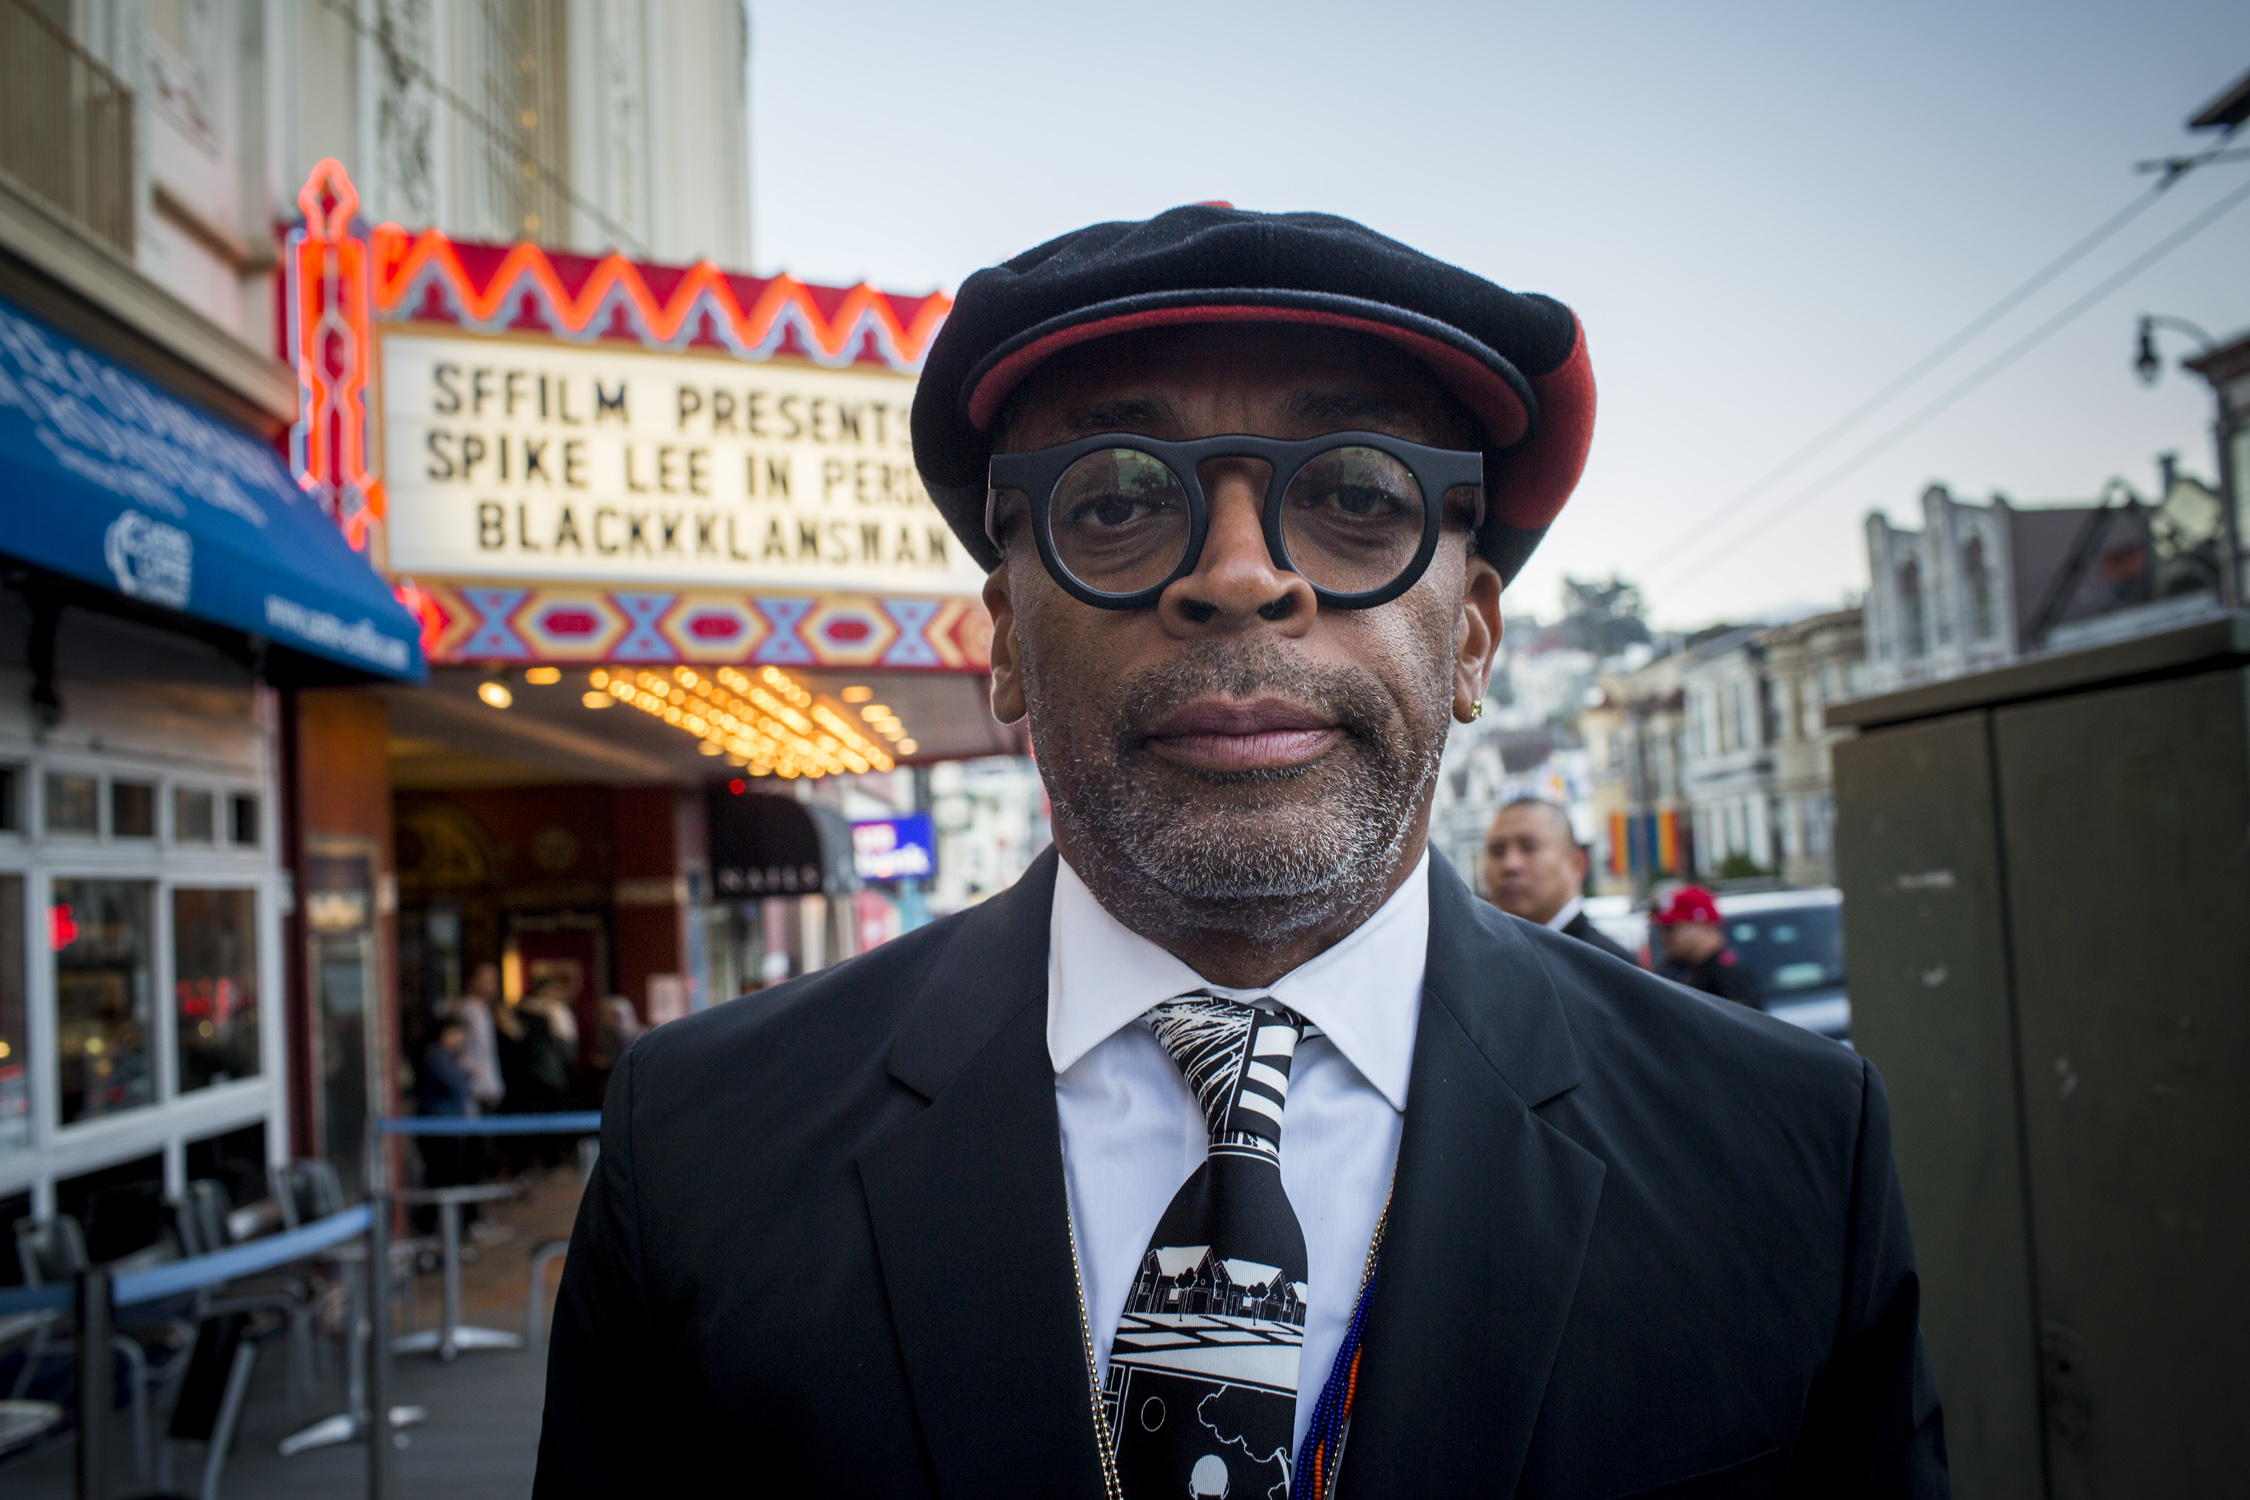 Spike Lee Shares How a Love of Connery's Bond and Bruce Lee Made Him Realize 'People Have to Tell Their Own Stories' – Exclusive